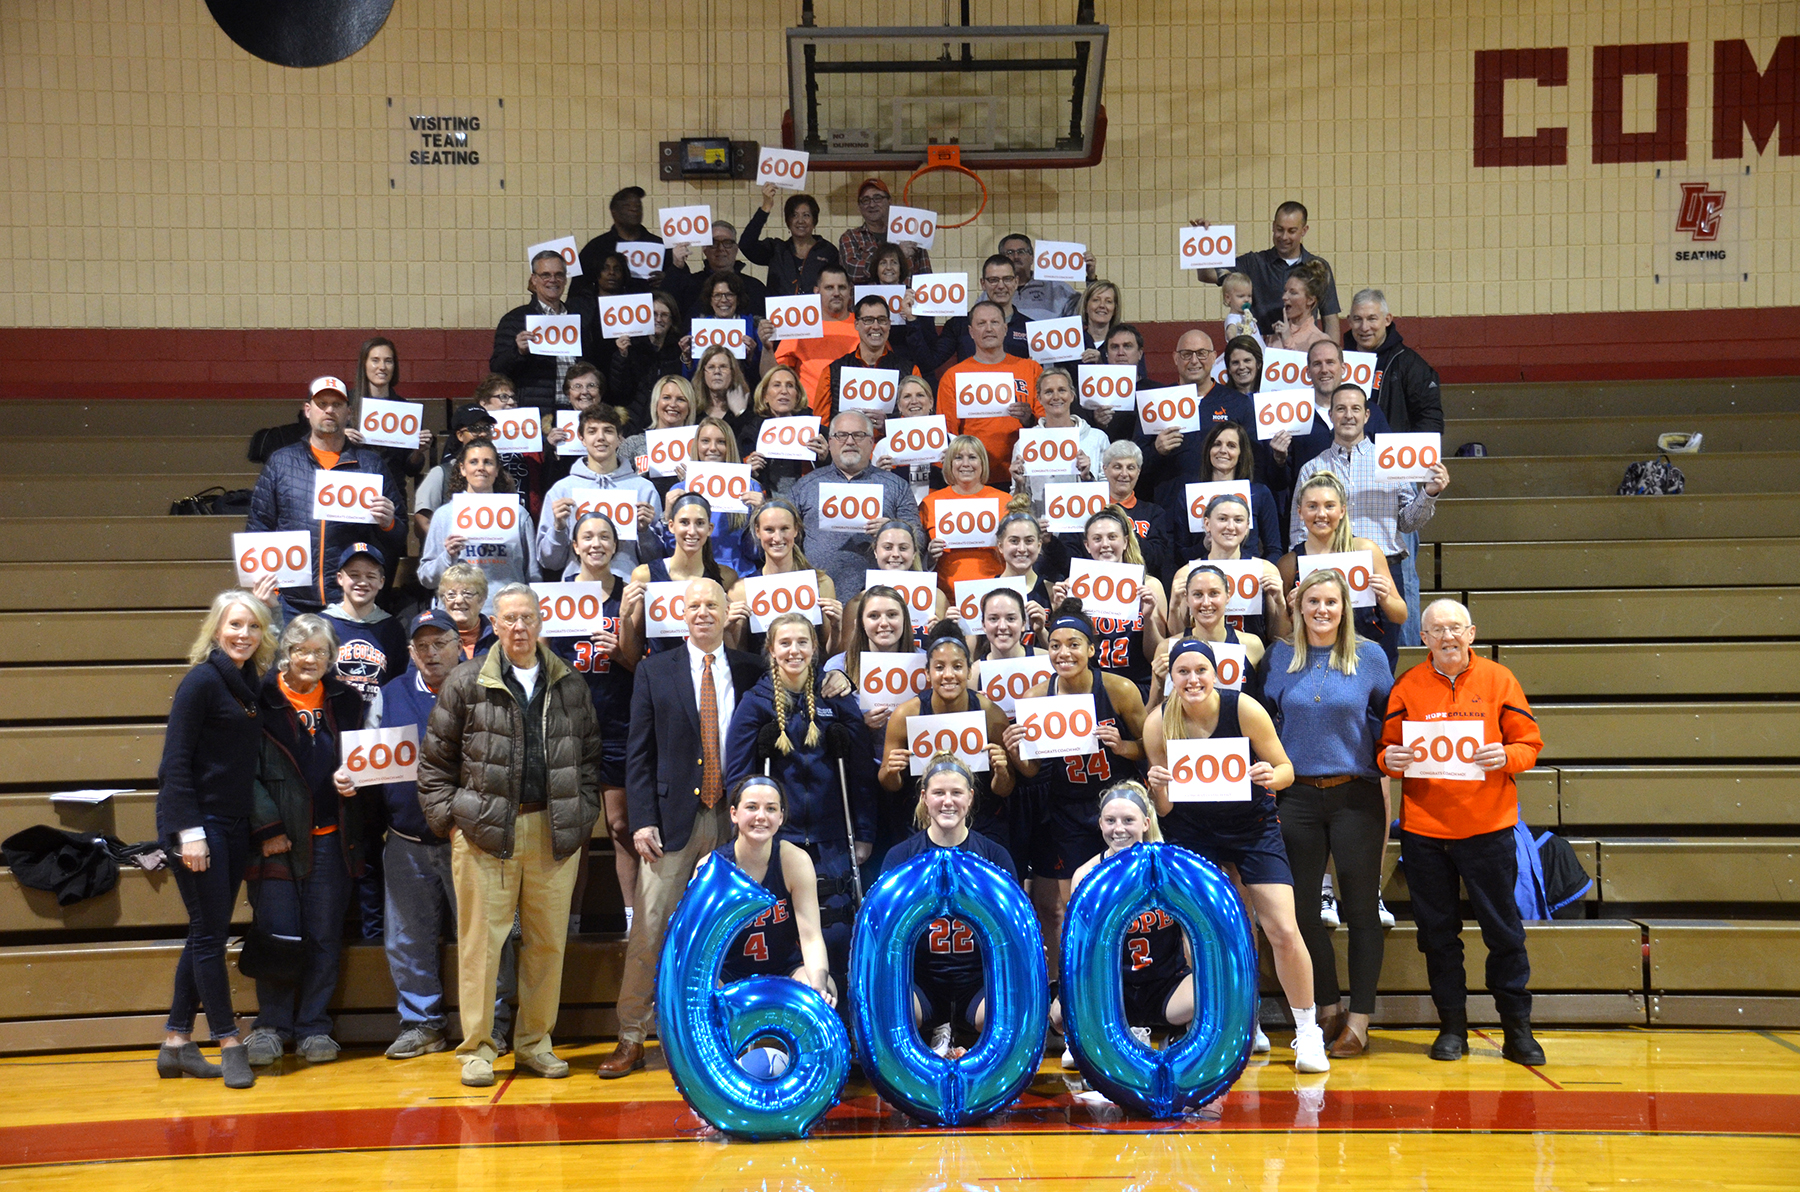 Head coach Brian Morehouse surrounded by his fans holding 600 signs after his 600th career victory